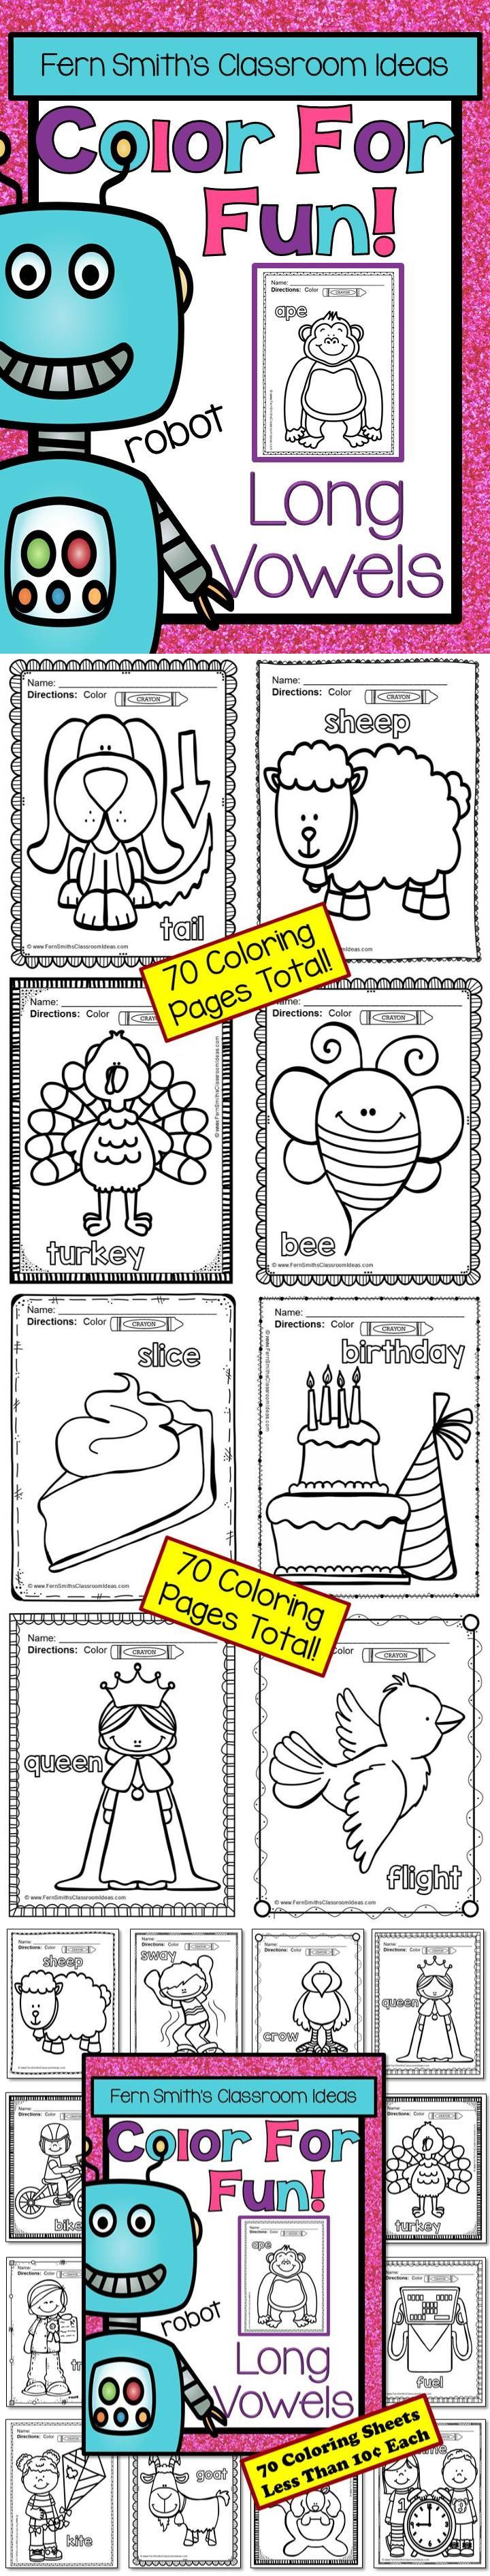 Coloring Pages for Long Vowels | Long Vowels, Printable Coloring Pages ...